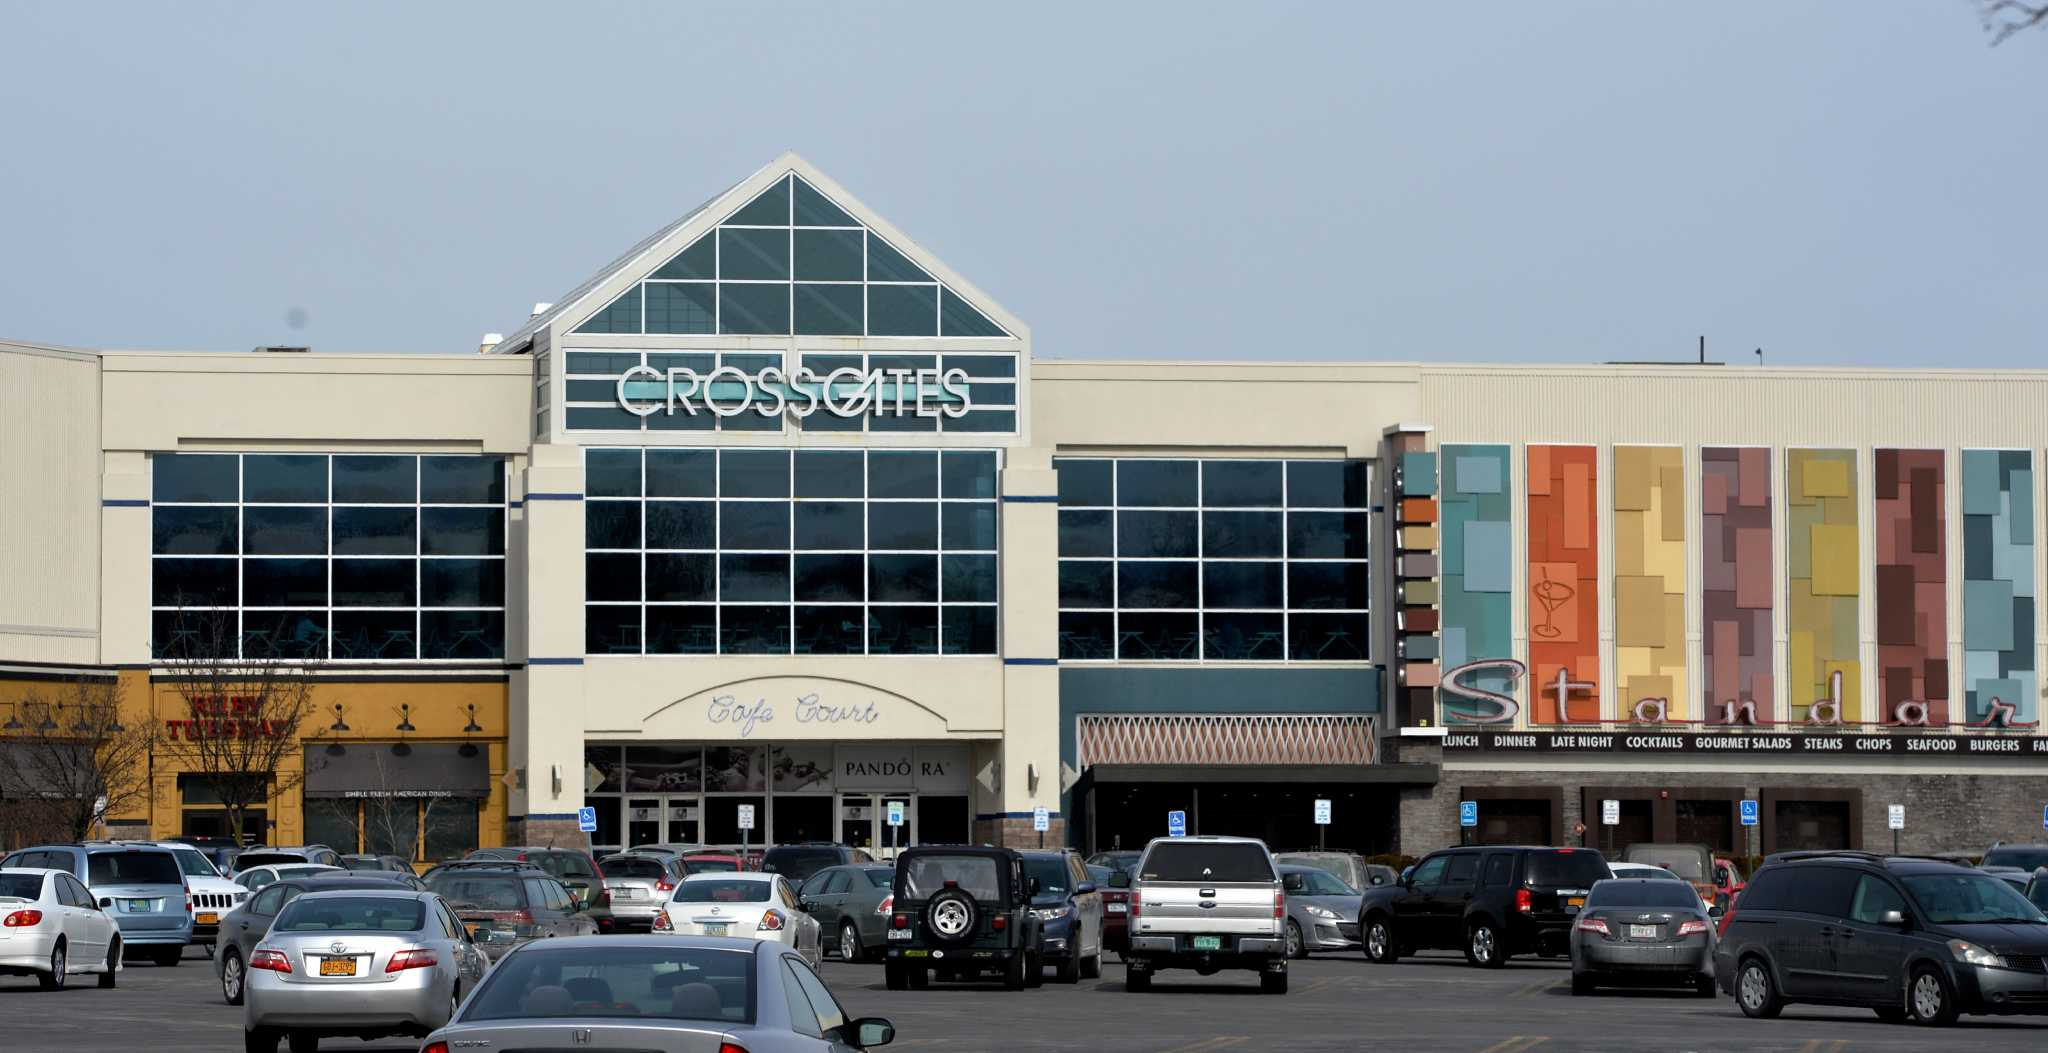 Exciting Holiday Takes Toll On Stores Times Union Crossgates Mall New Stores Crossgates Mall Stores Hiring baby Crossgates Mall Stores